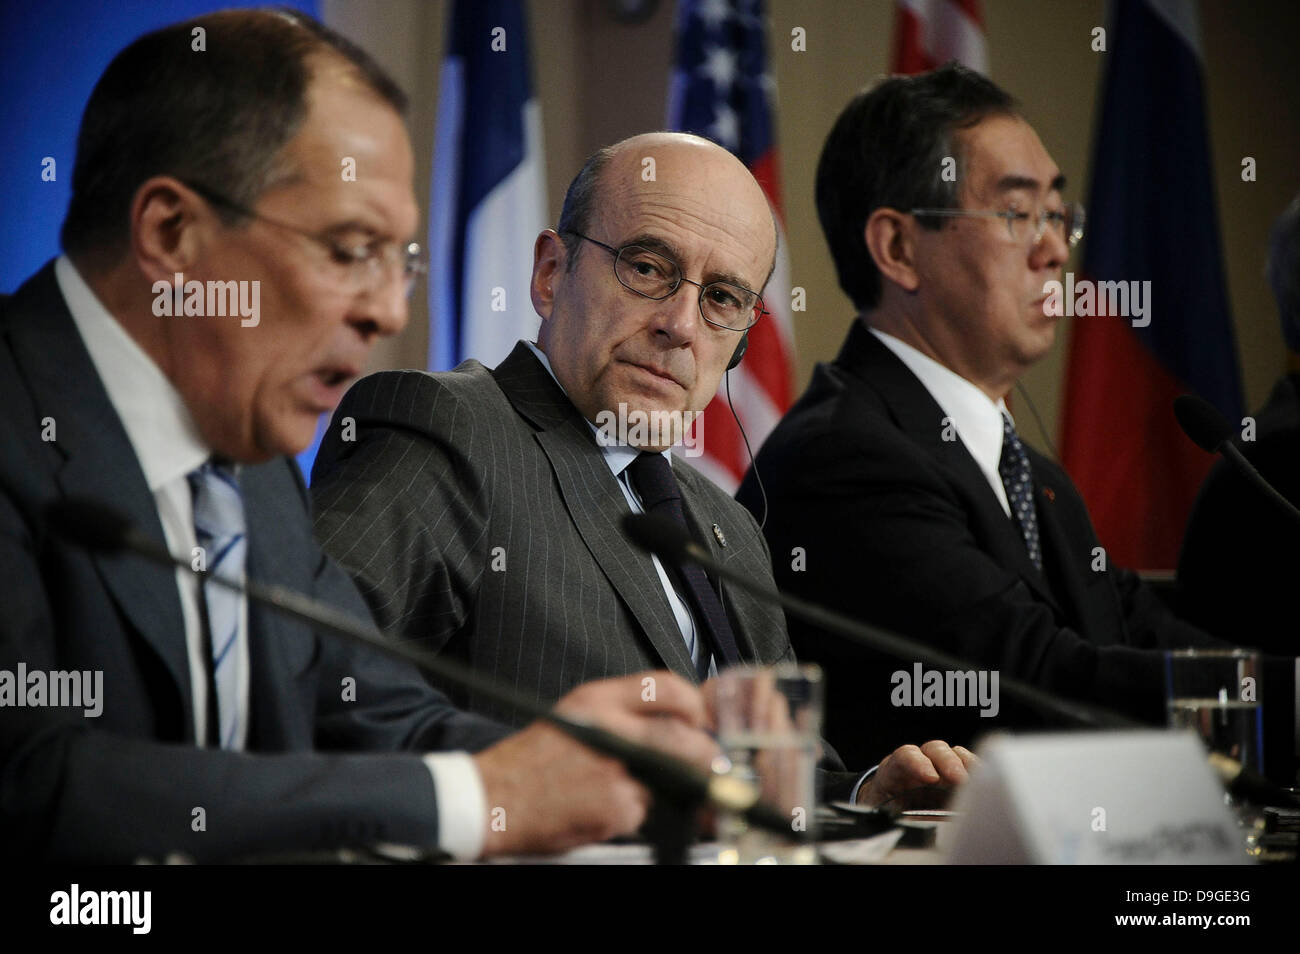 G8 Foreign Ministers, Russian Sergei Lavrov, French Alain Juppe, Japanese Takeaki Matsumoto  during a joint press - Stock Image